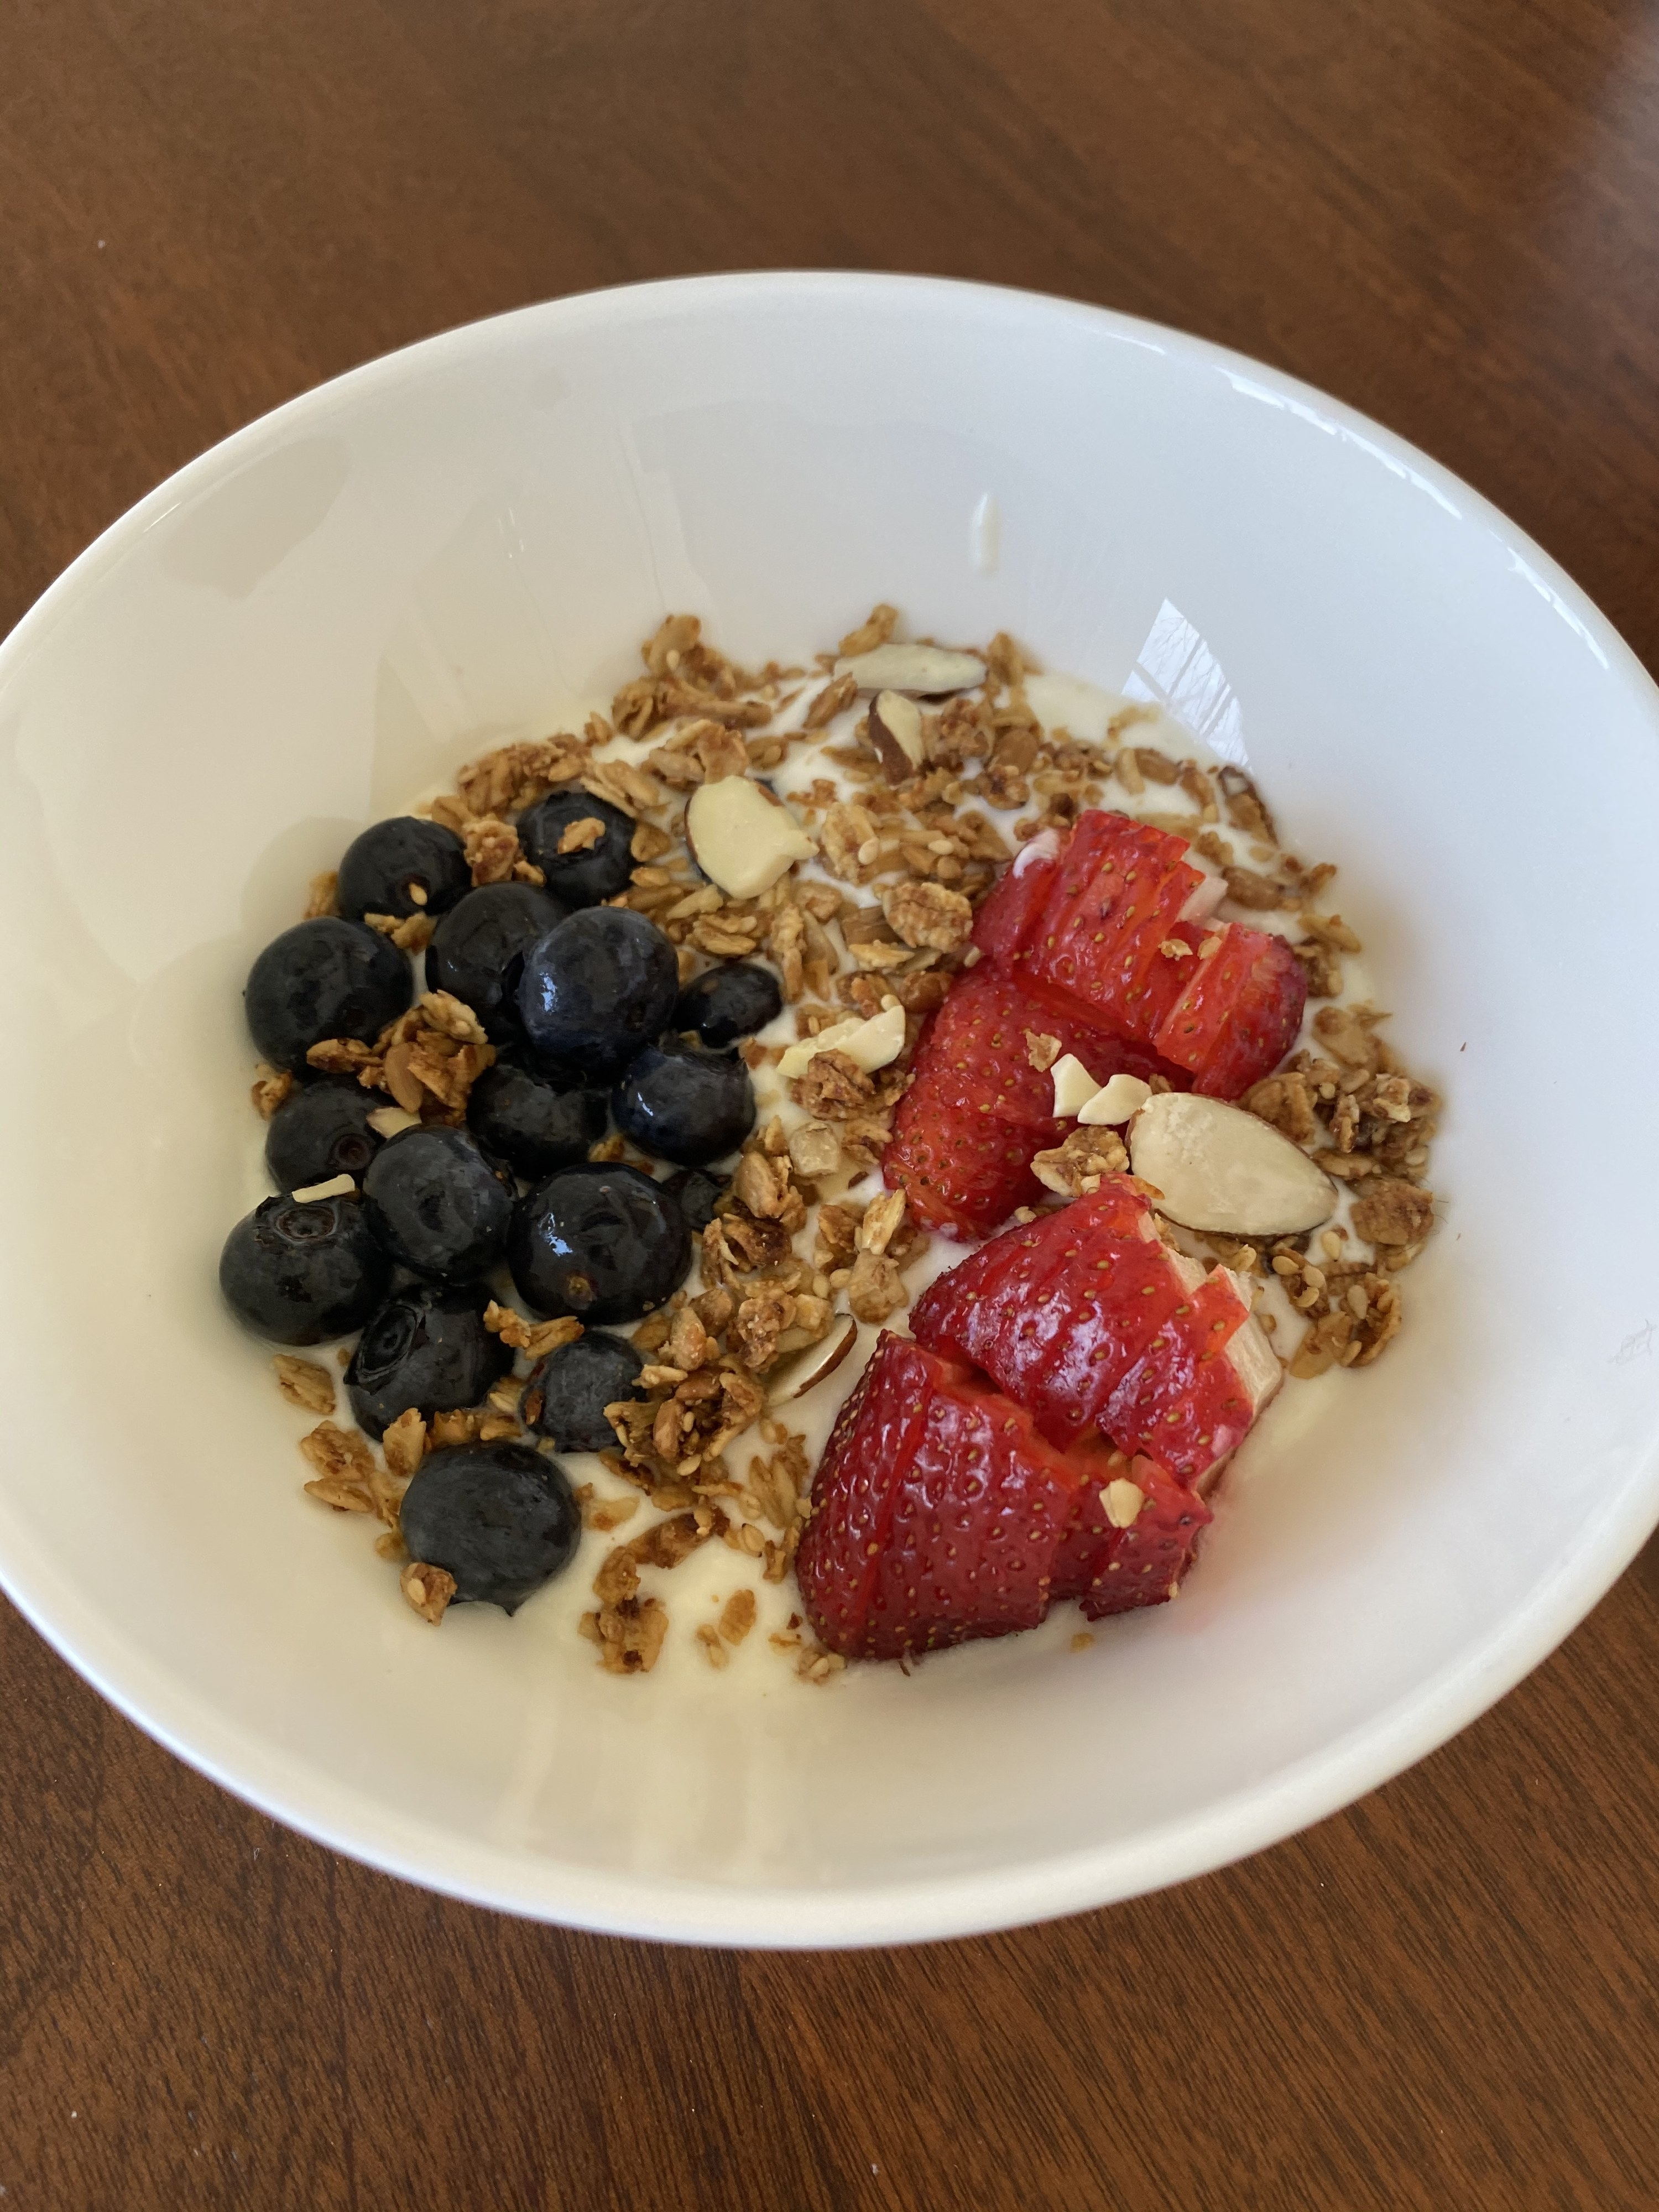 A bowl of homemade yogurt topped with granola and berries.